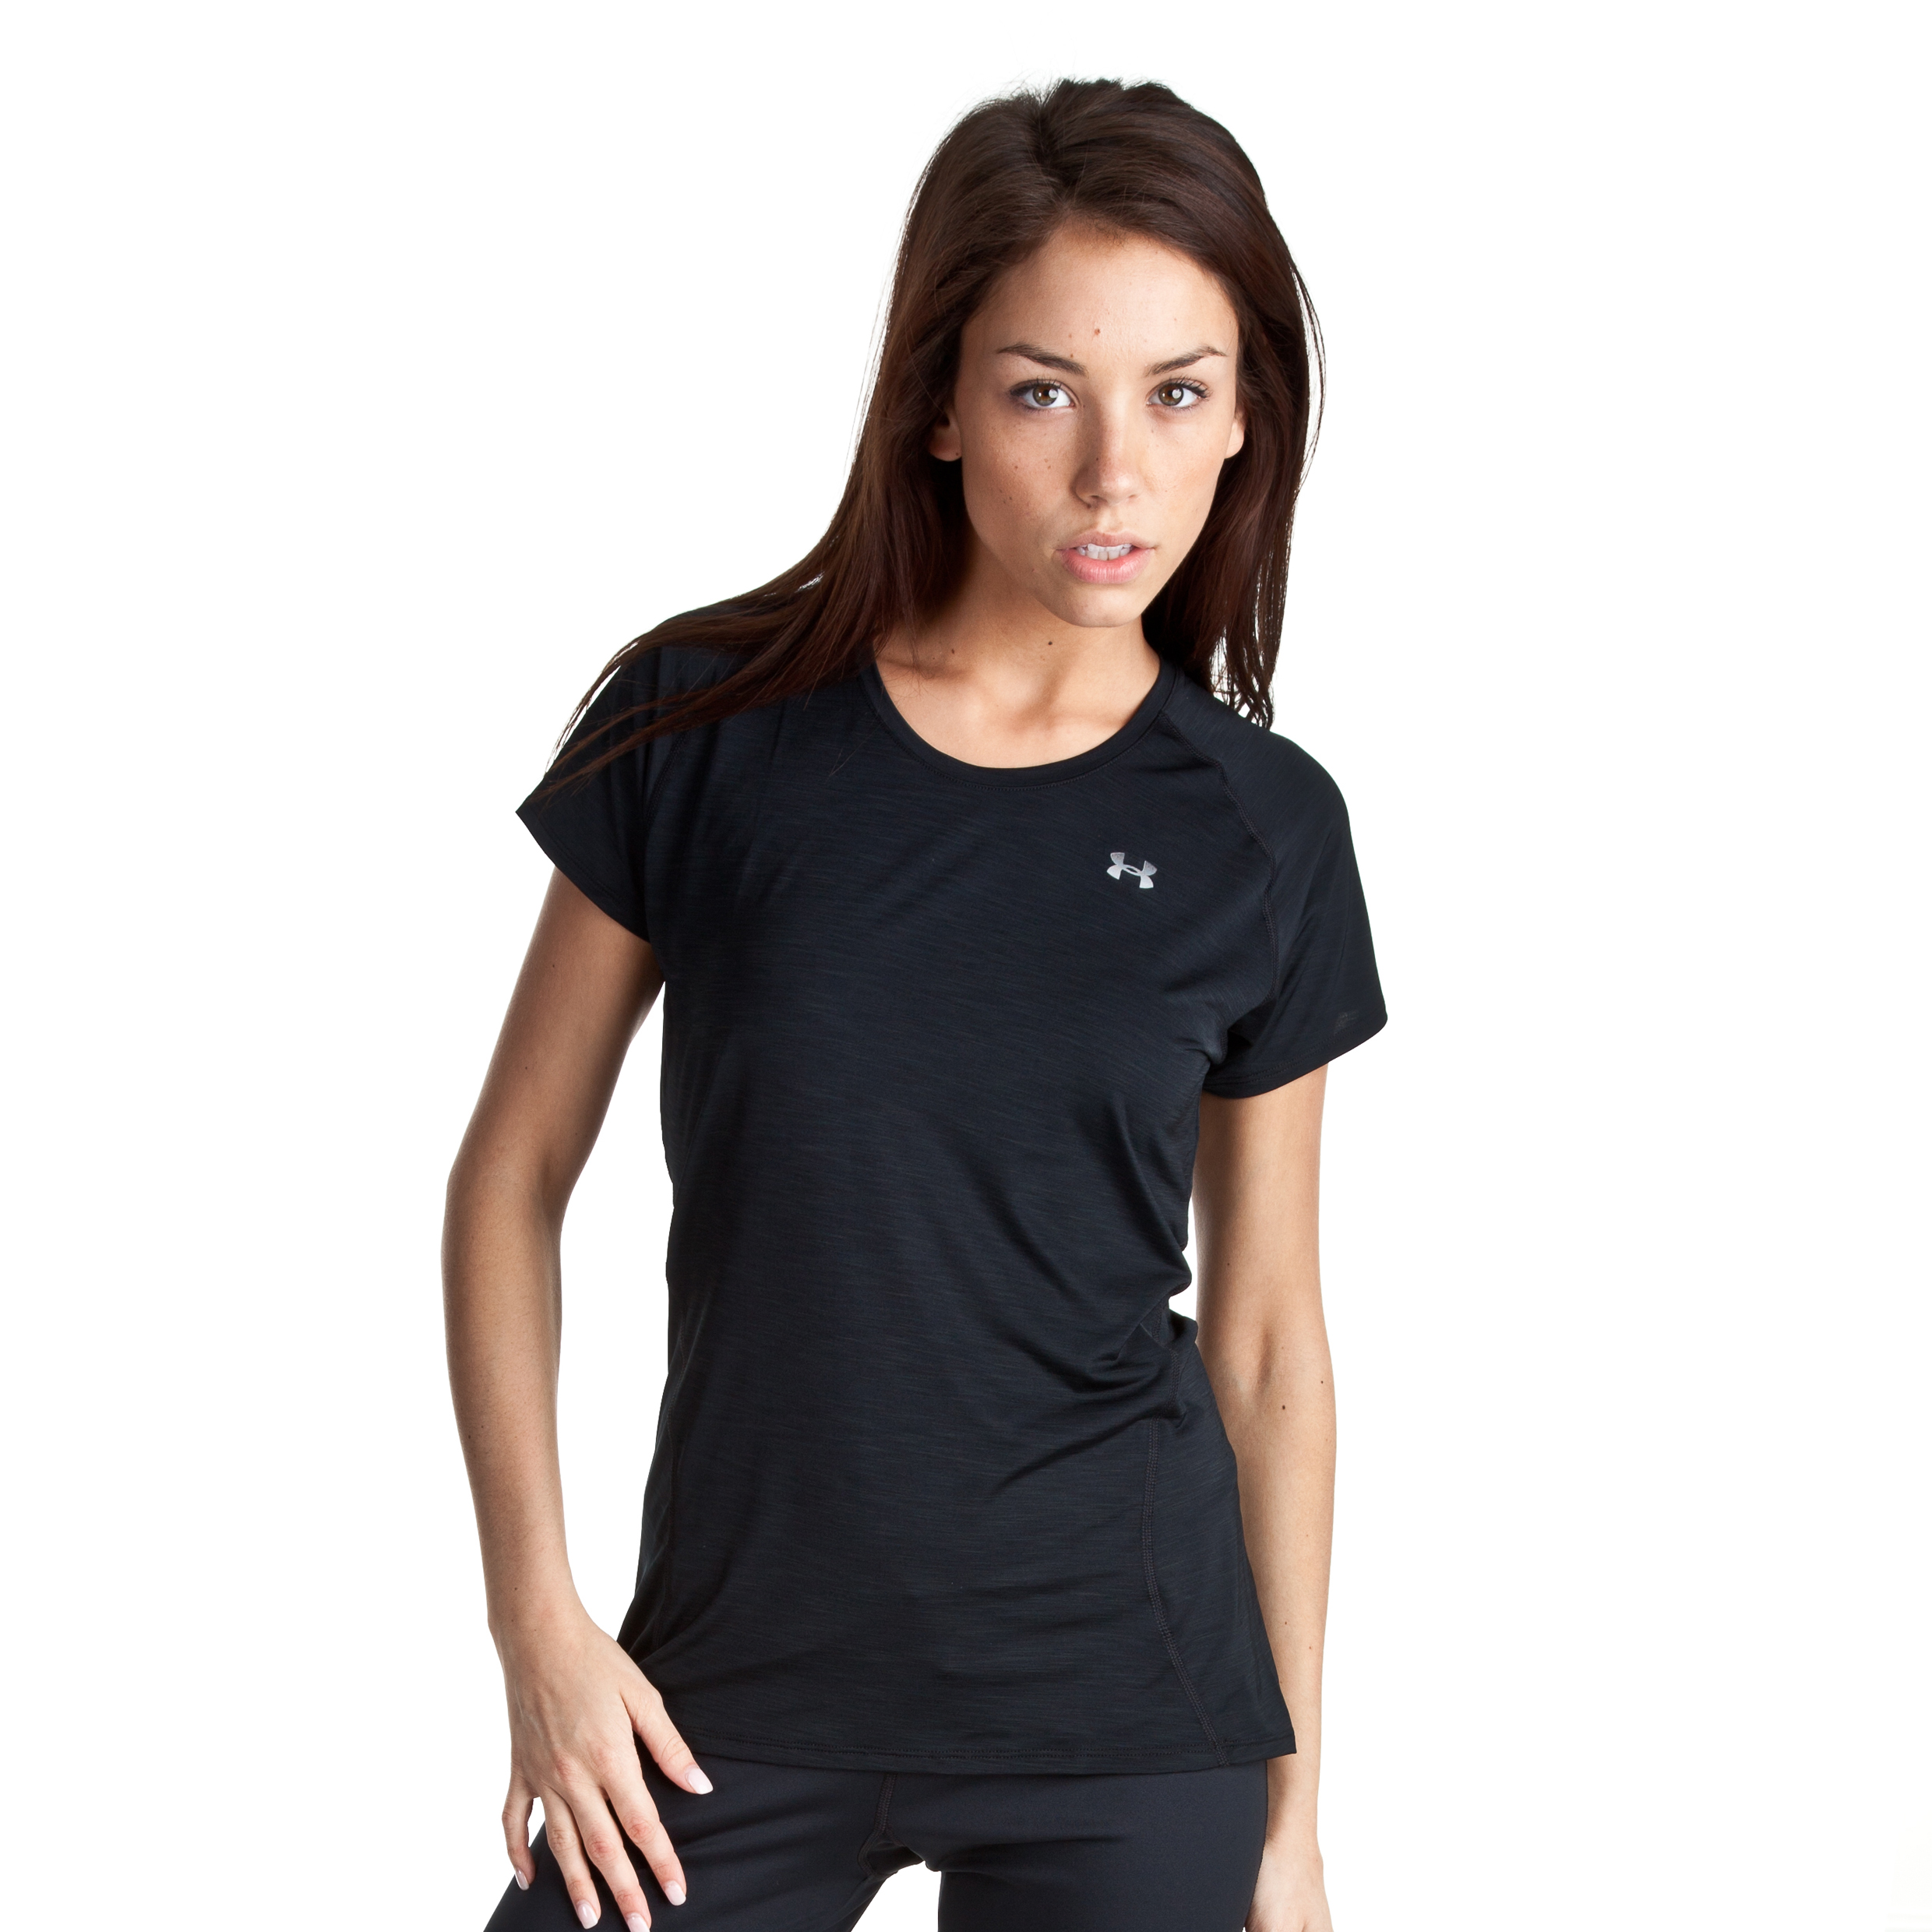 Under Armour Escape Get Started Short Sleeve T-Shirt - Black/HVY - Womens